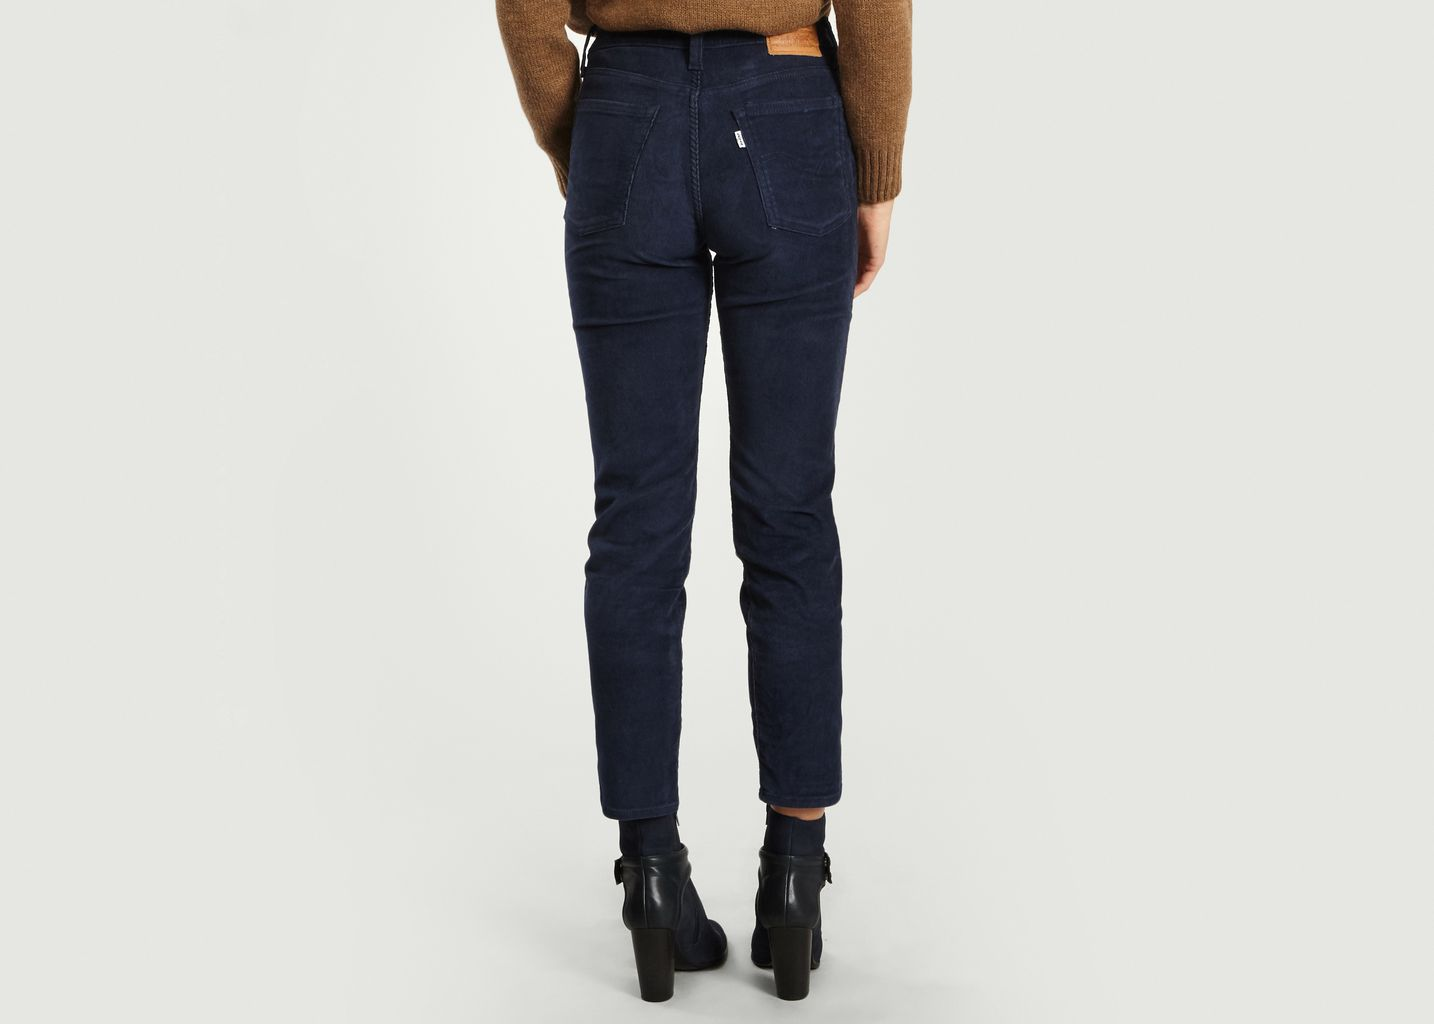 Jean Coupe Droite Wedgie - Levi's Red Tab